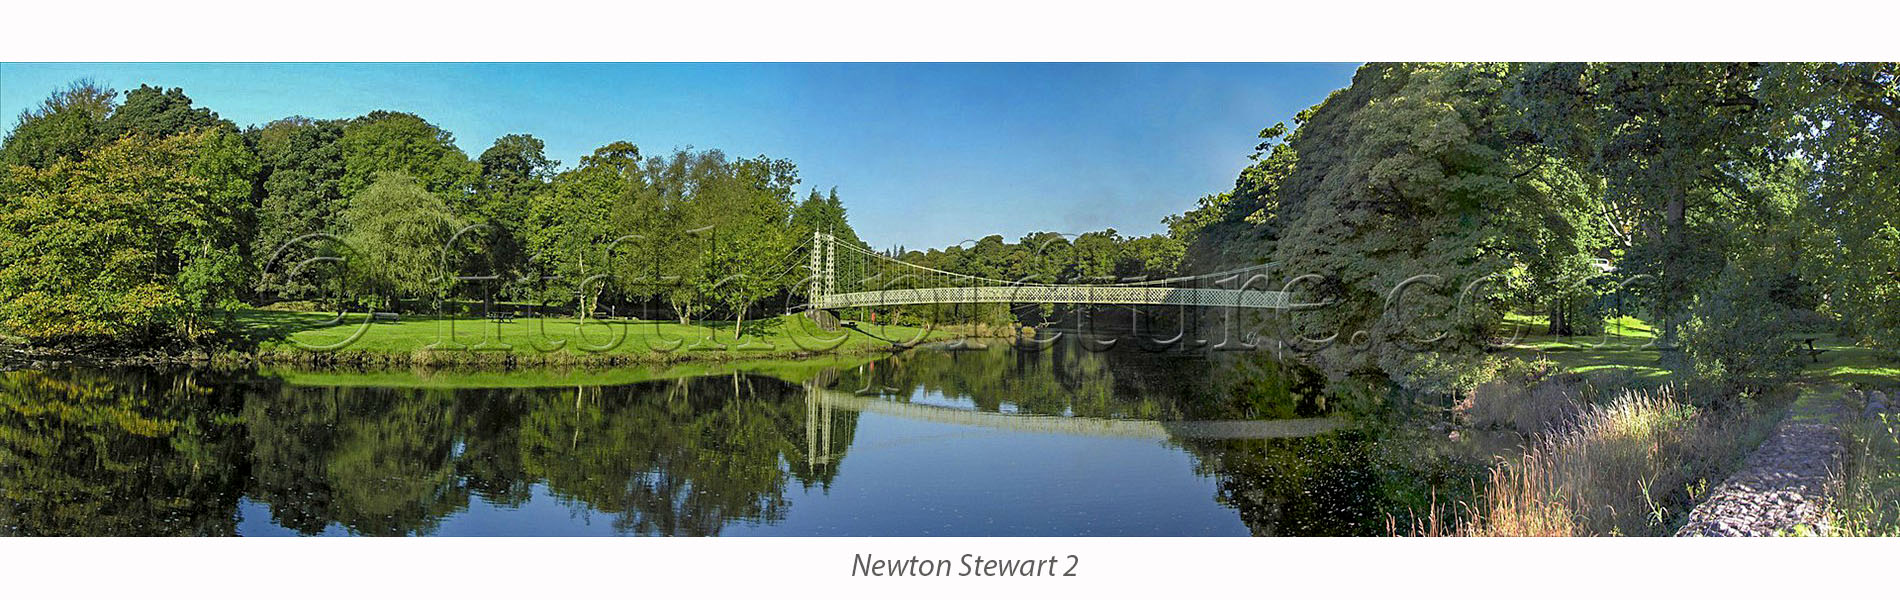 newton_stewart_suspension_bridge_1.jpg